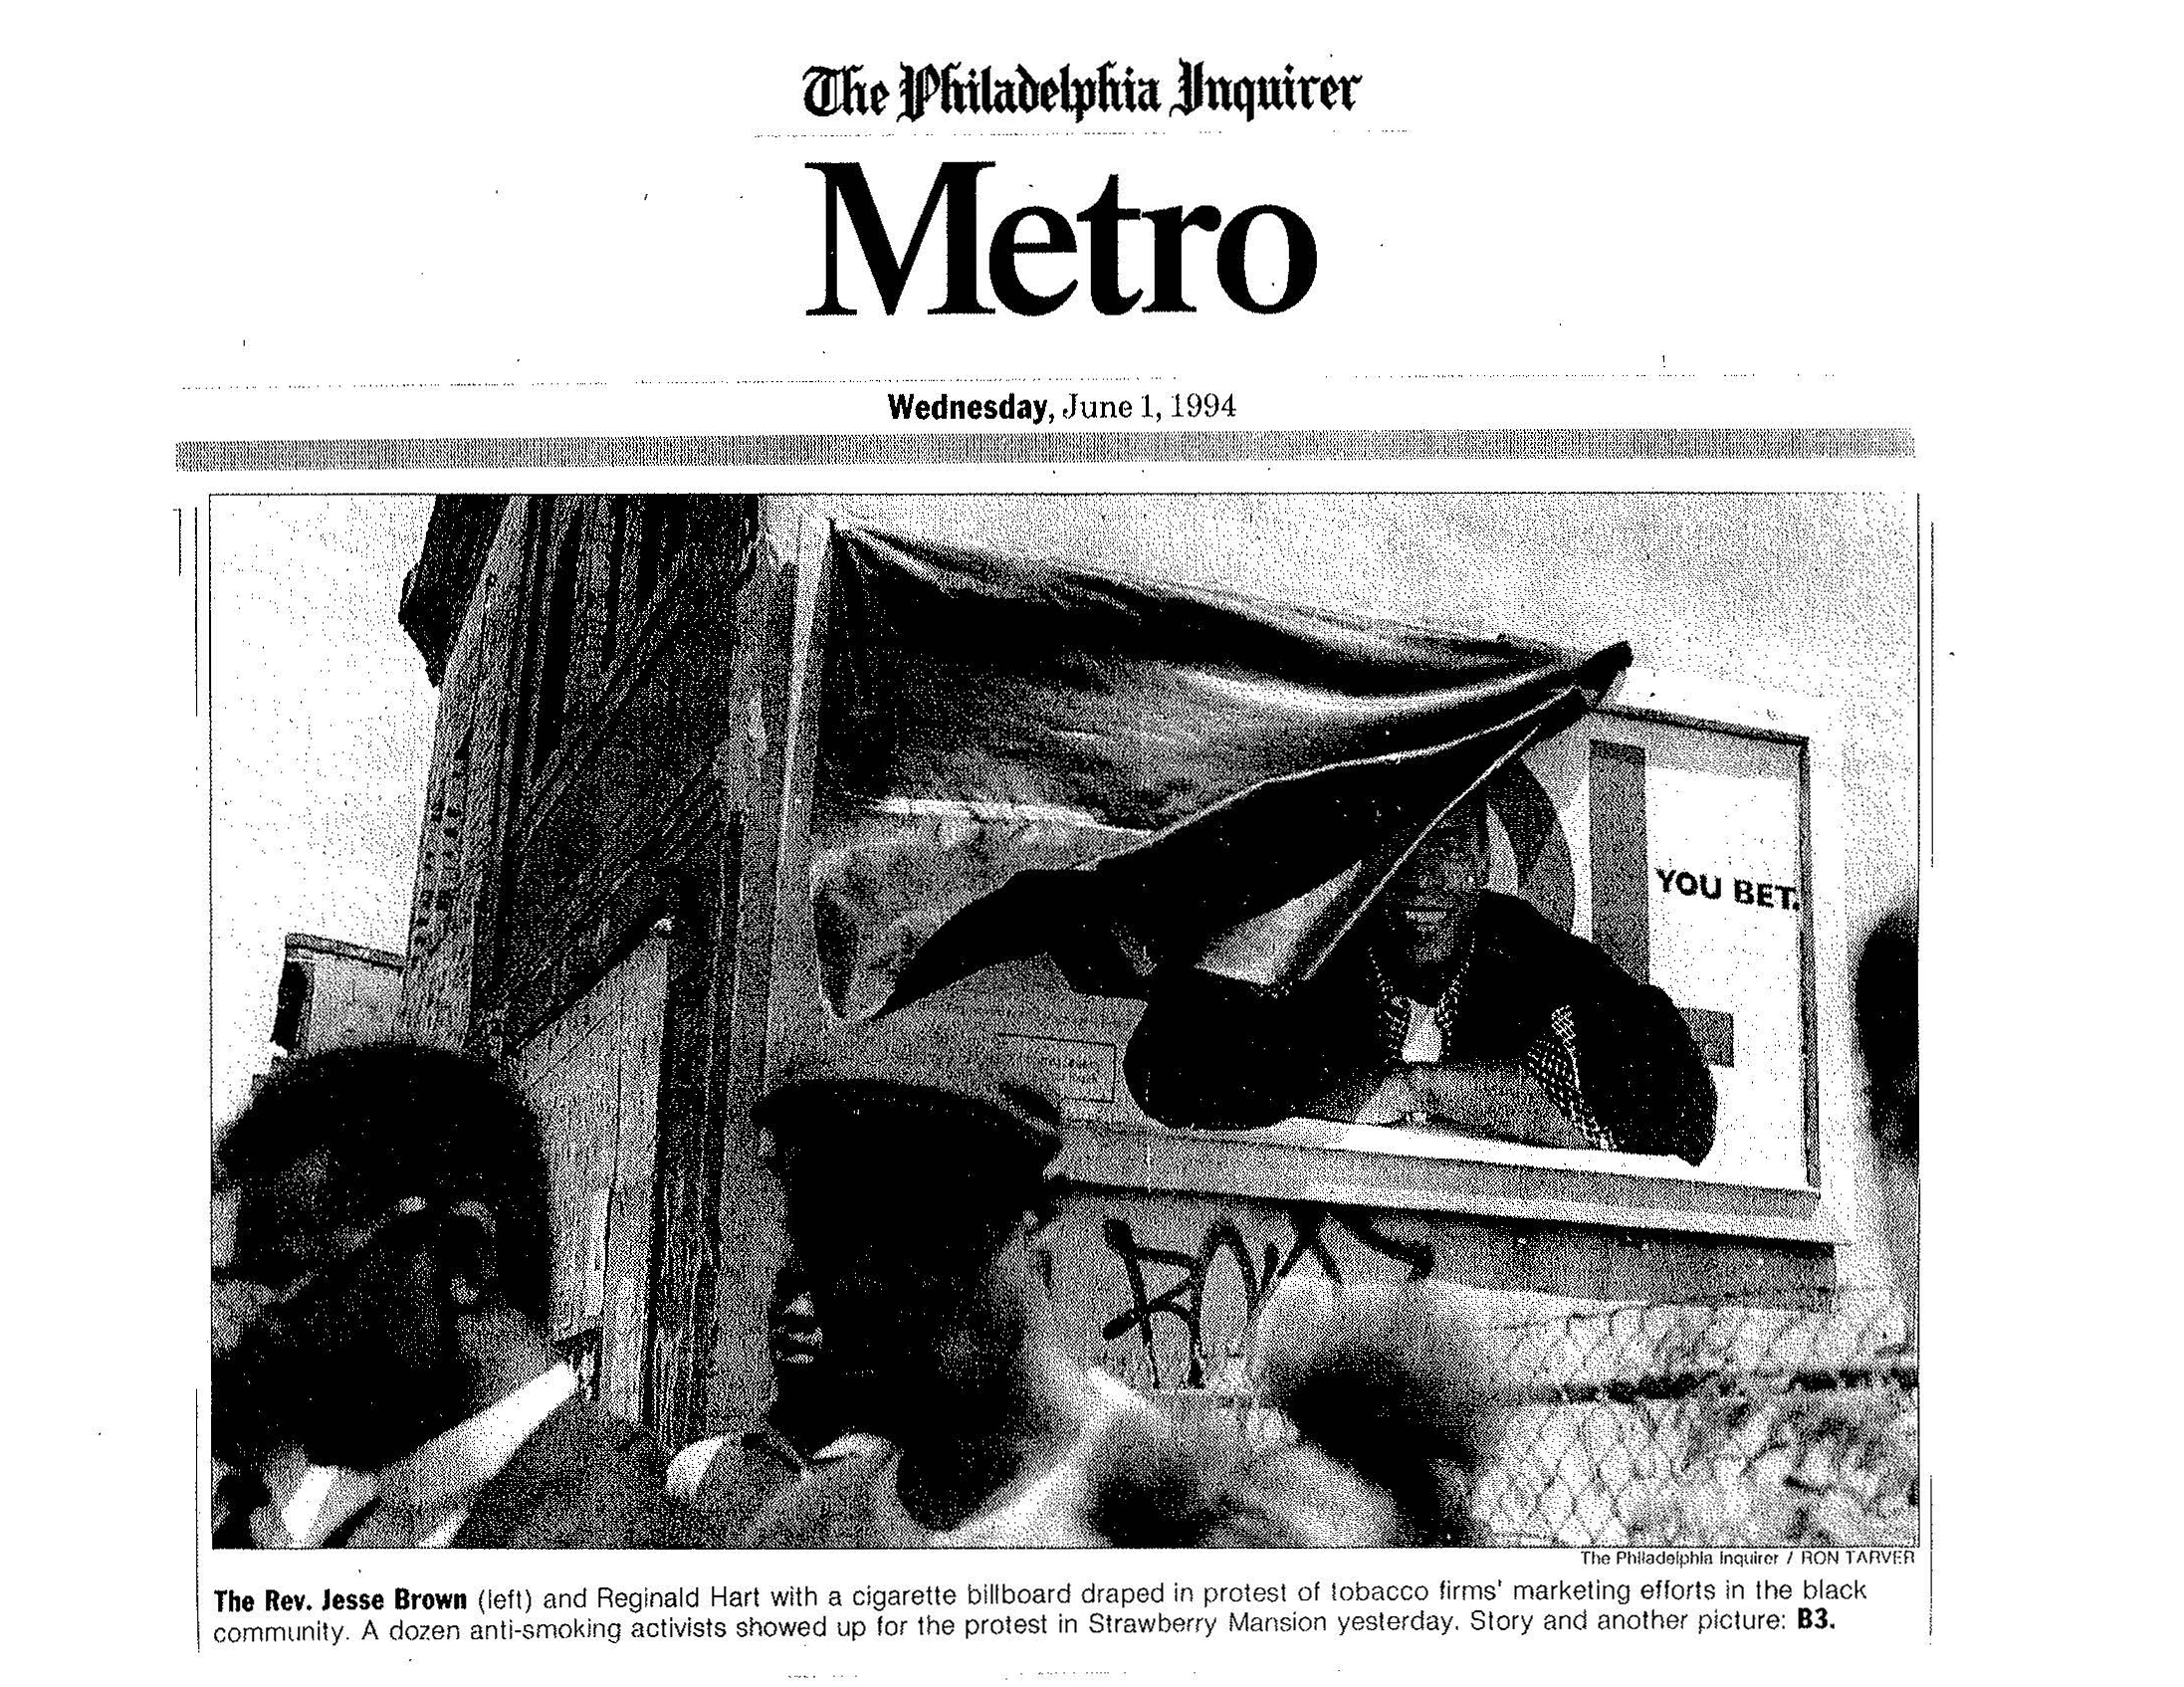 1994 06 01 Phil. Inquirer Billboard Draped in Mourning Pg 1